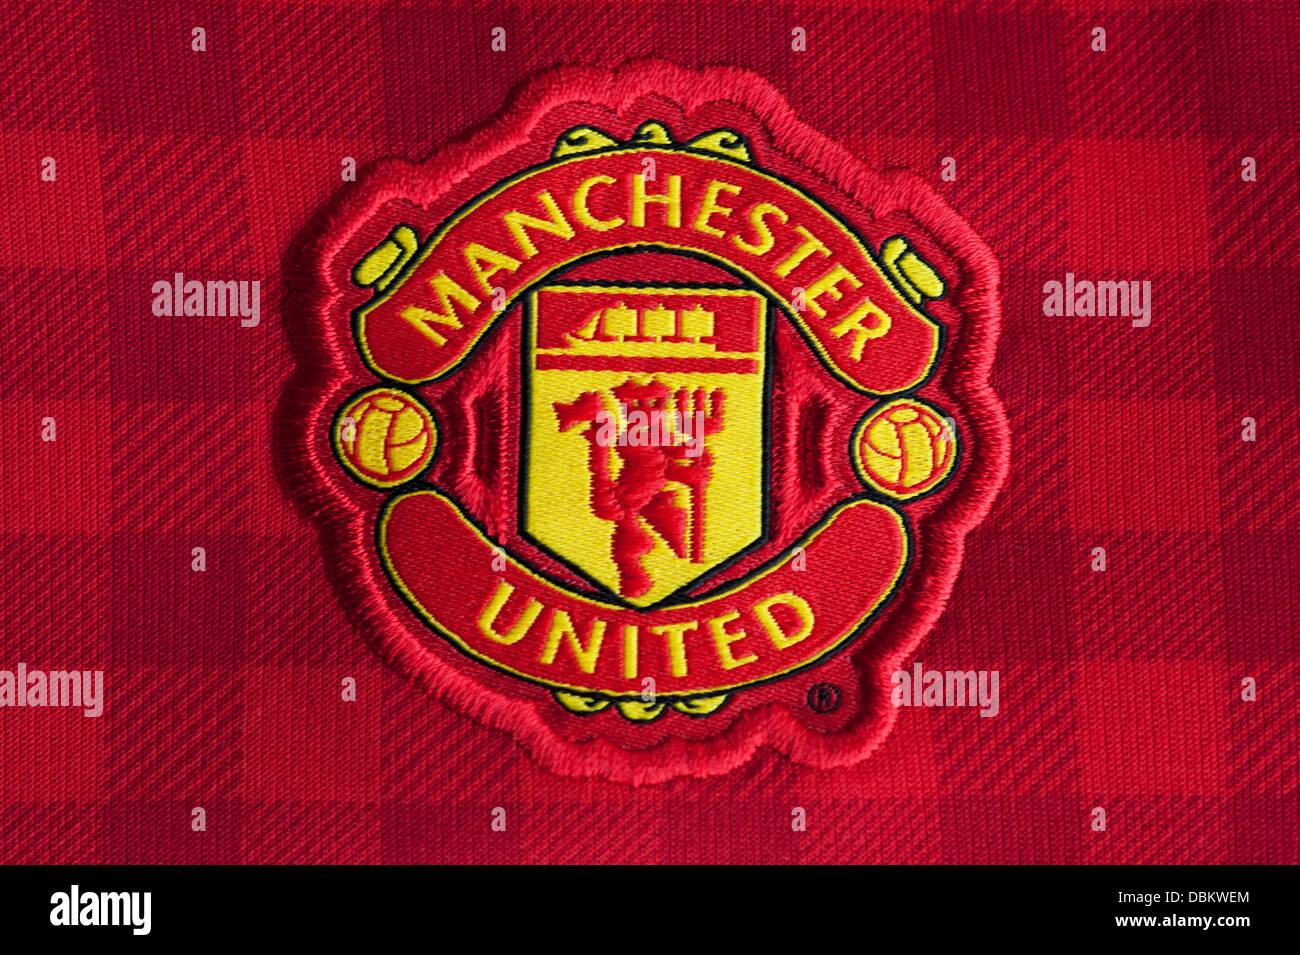 Manchester United Football Club Crest Stock Photo 58829420